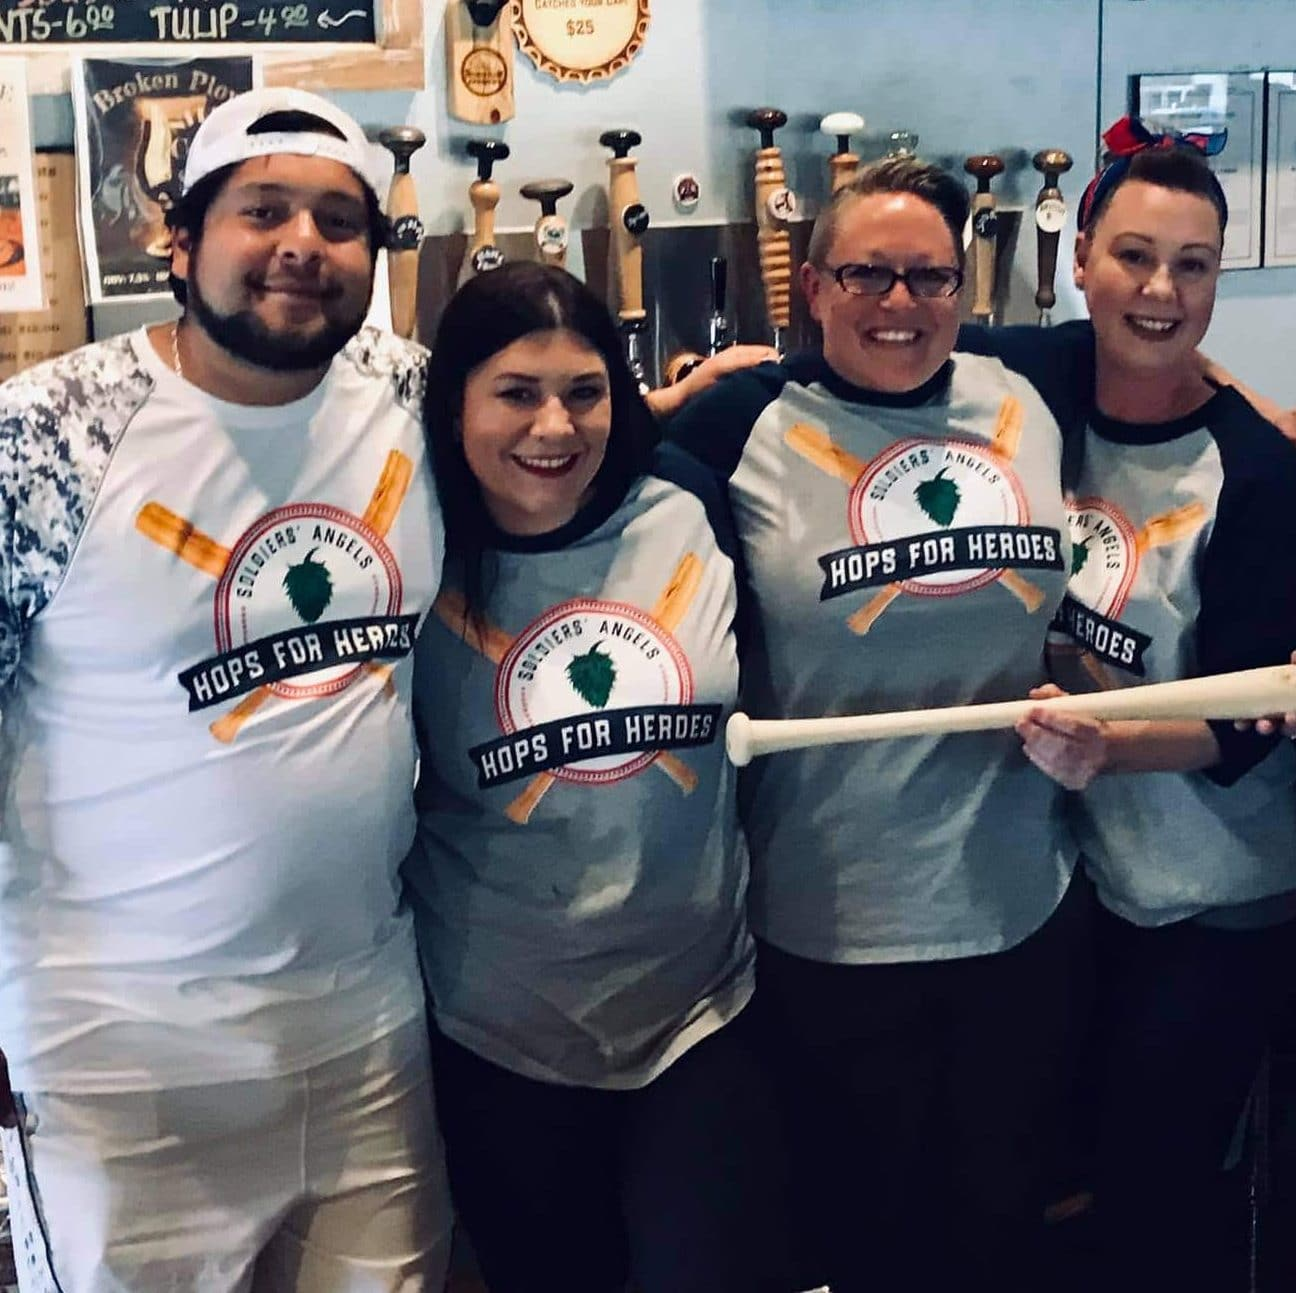 Soldiers' Angels Hops for Heroes